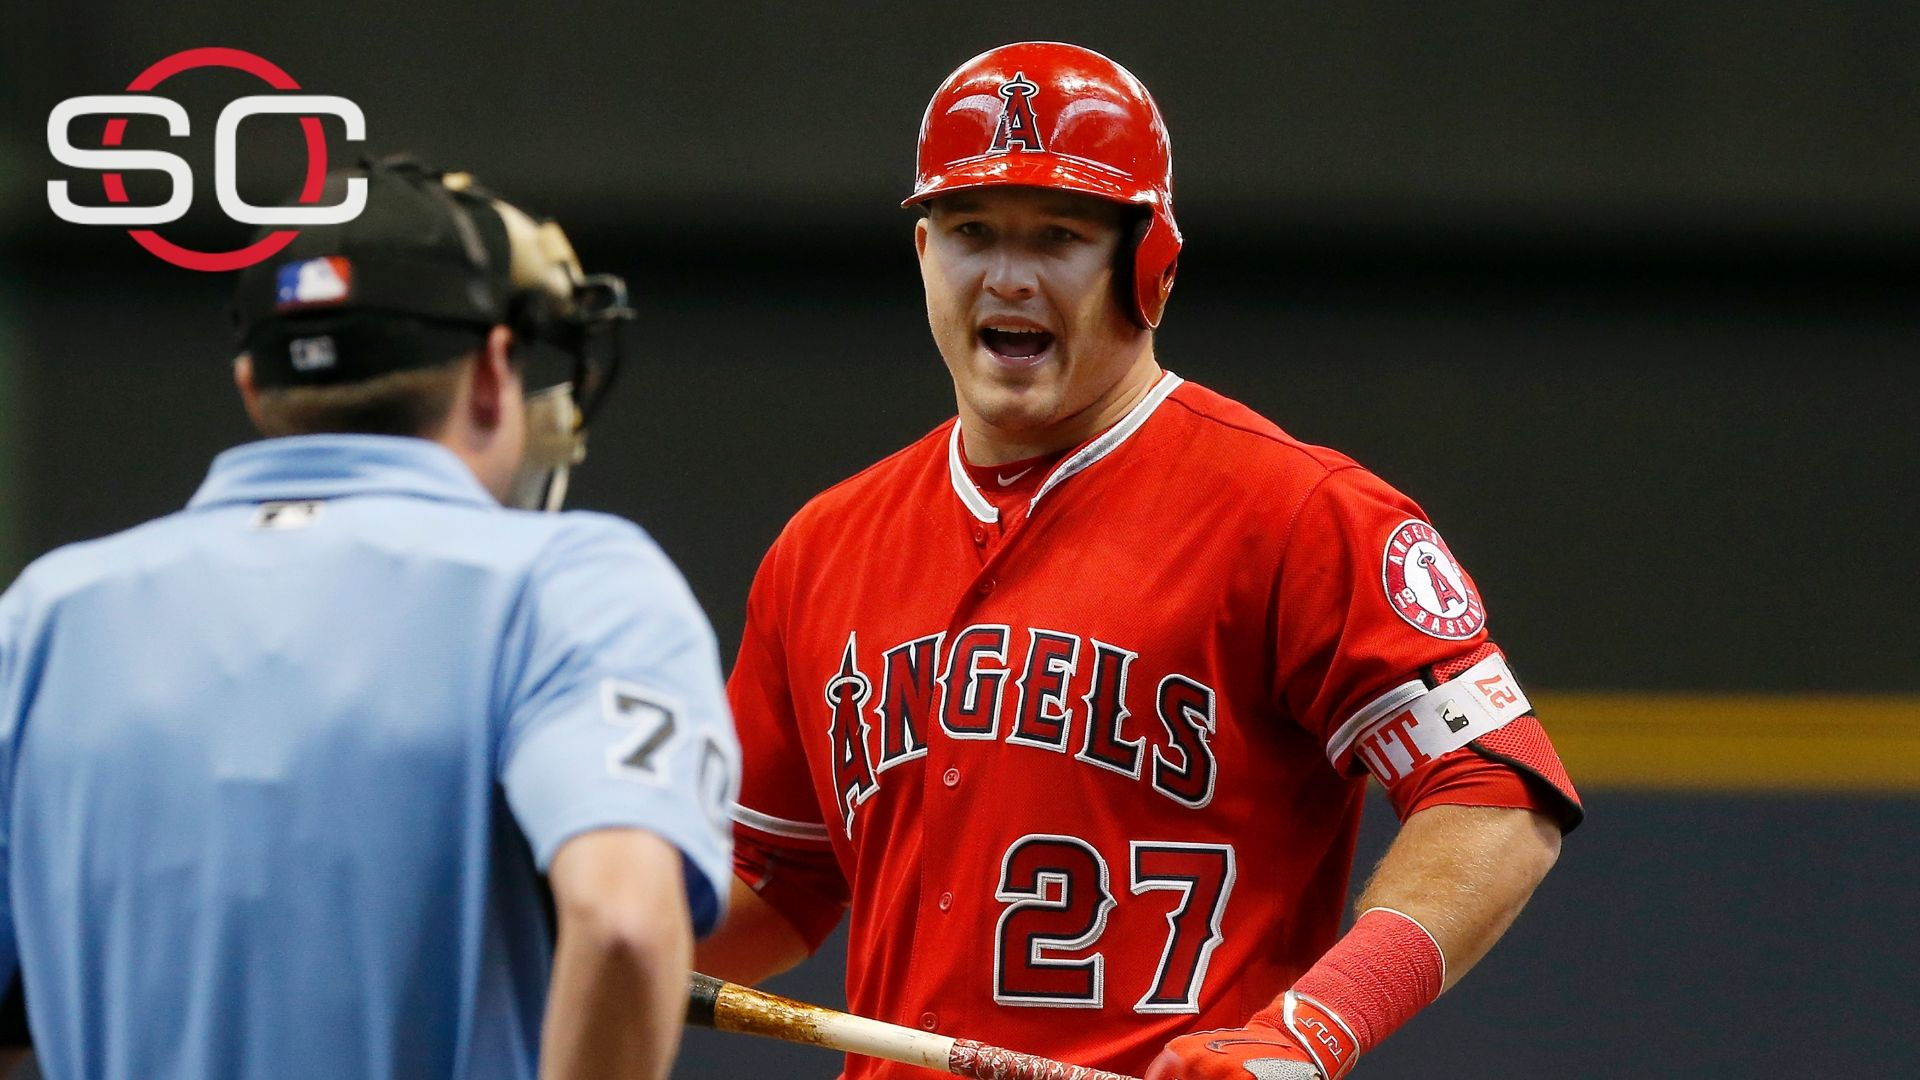 https://secure.espncdn.com/combiner/i?img=/media/motion/2016/0506/dm_160506_COM_MLB_Analysis_Schoenfield_on_Angels/dm_160506_COM_MLB_Analysis_Schoenfield_on_Angels.jpg